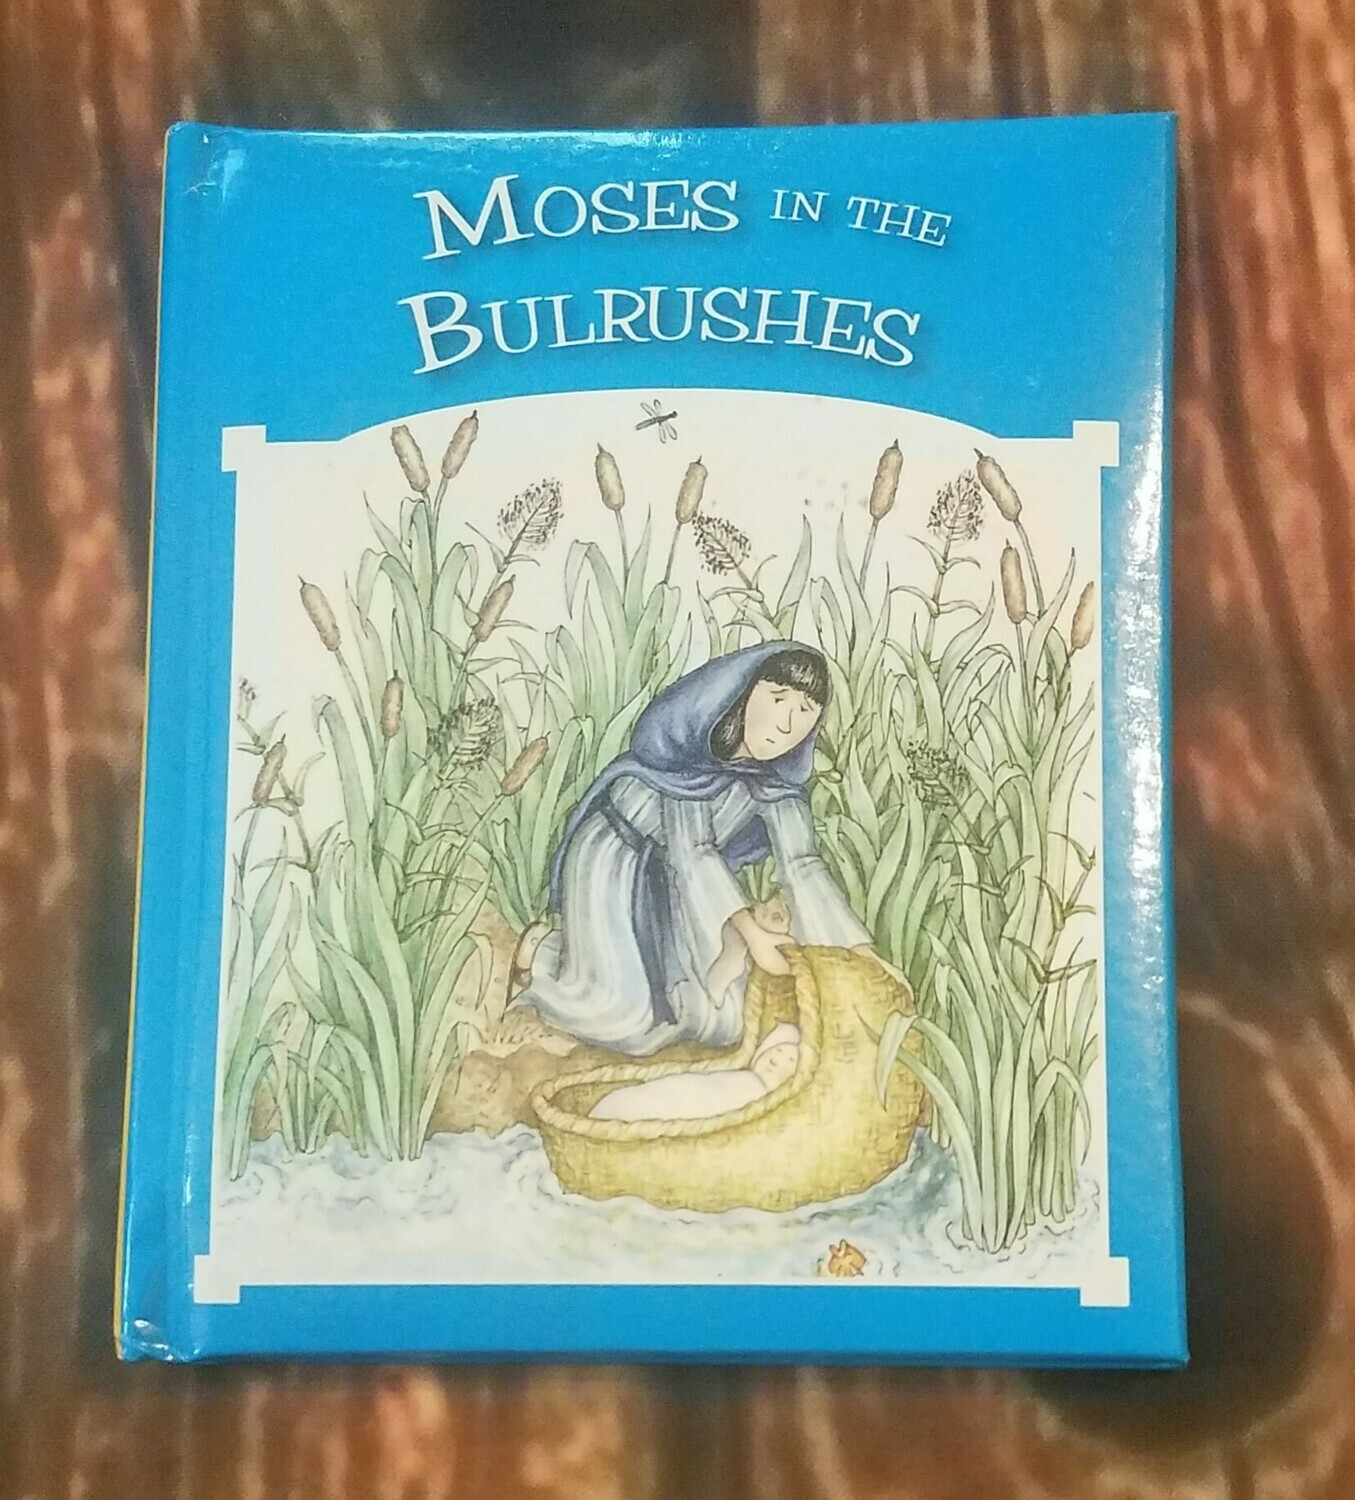 Moses in the Bulrushes by Tim and Jenny Wood